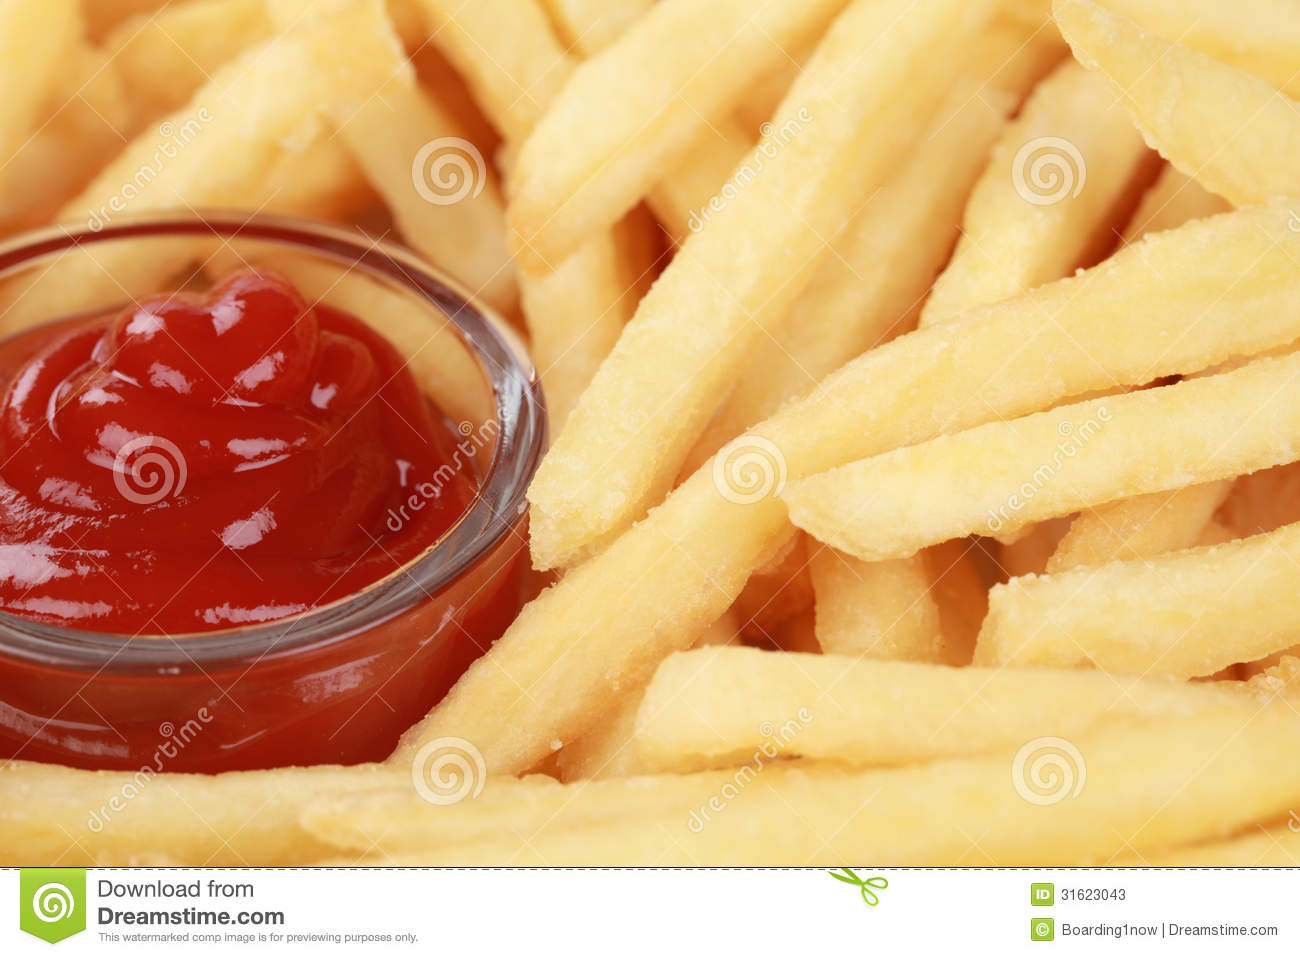 Fries And Ketchup Stock Photos - Image: 31623043